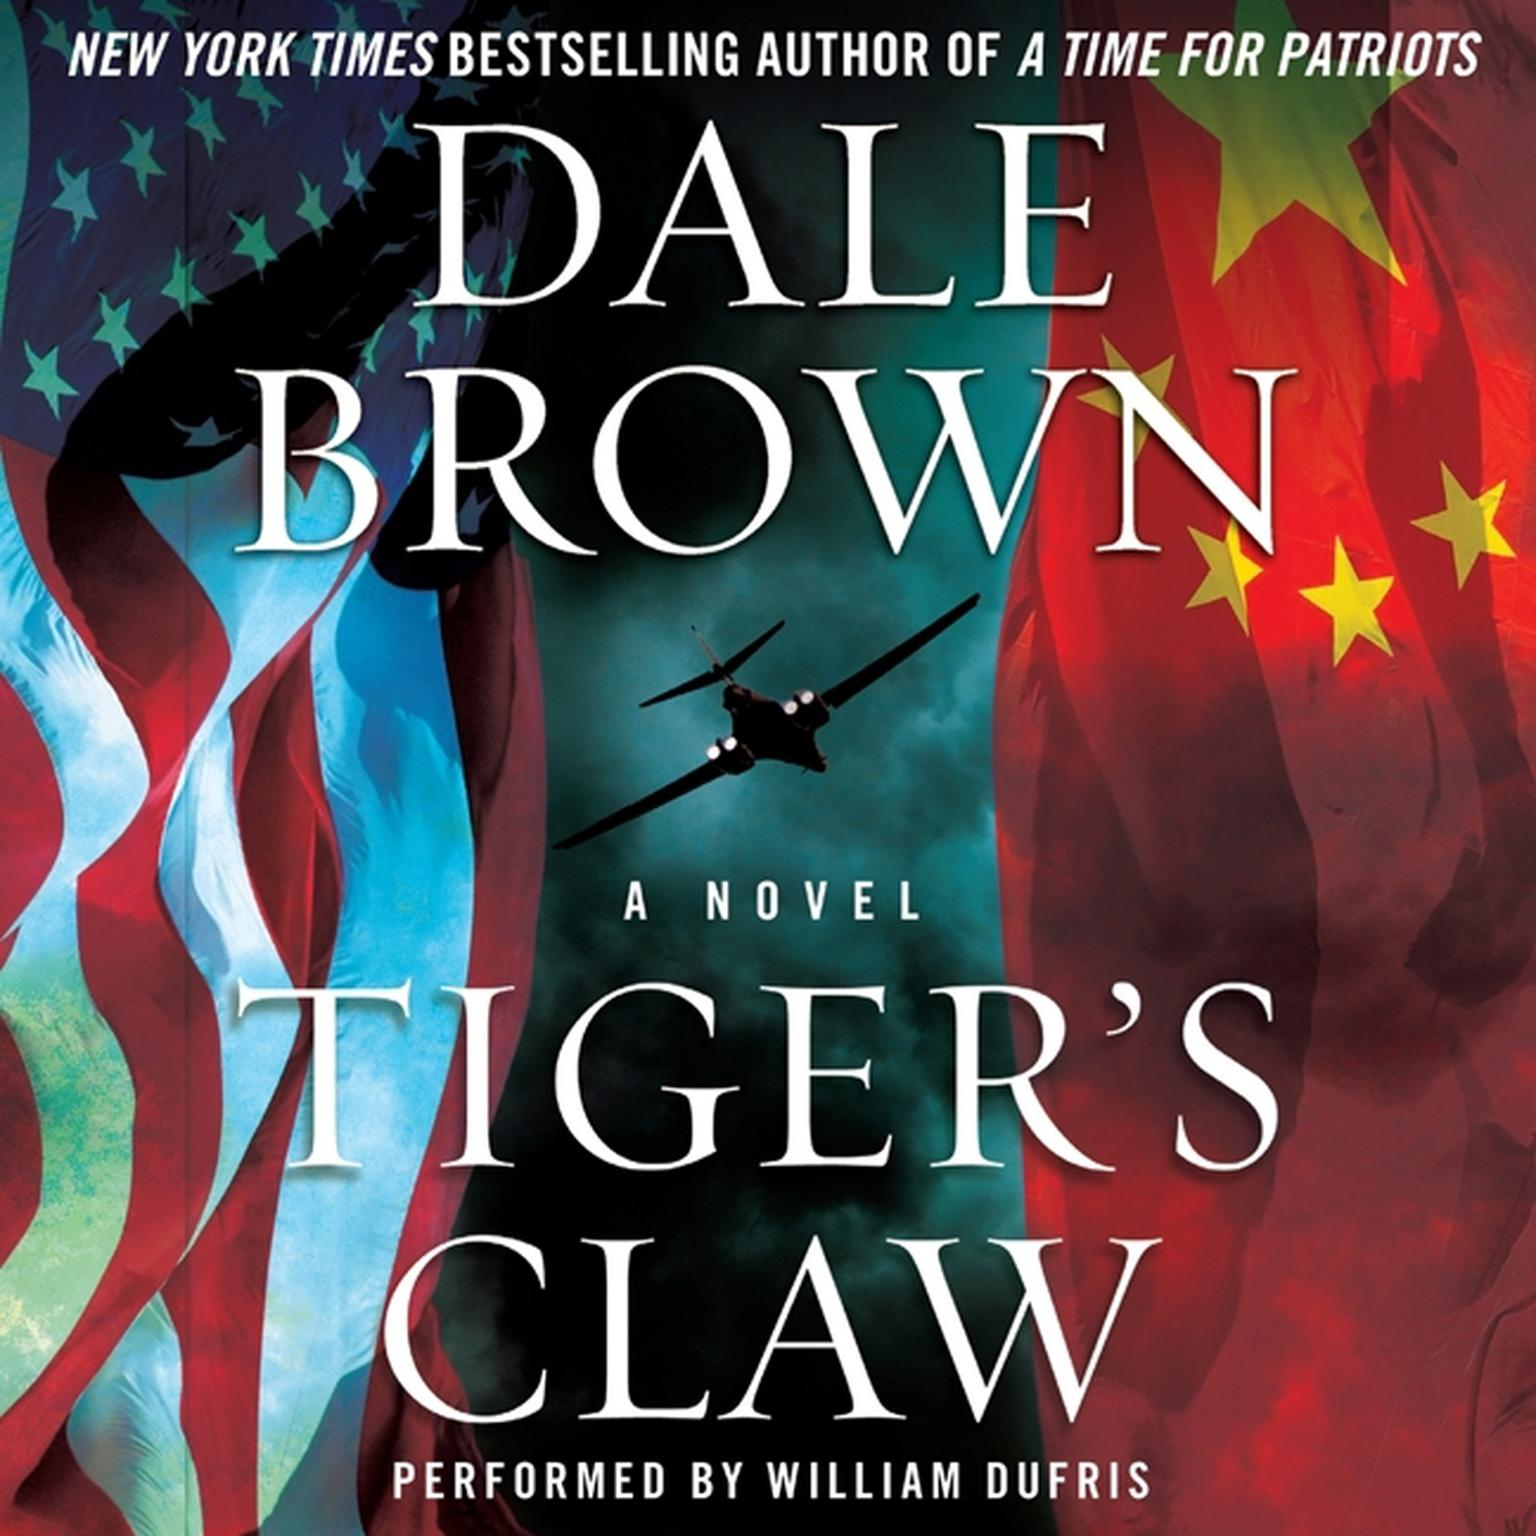 Printable Tiger's Claw Audiobook Cover Art